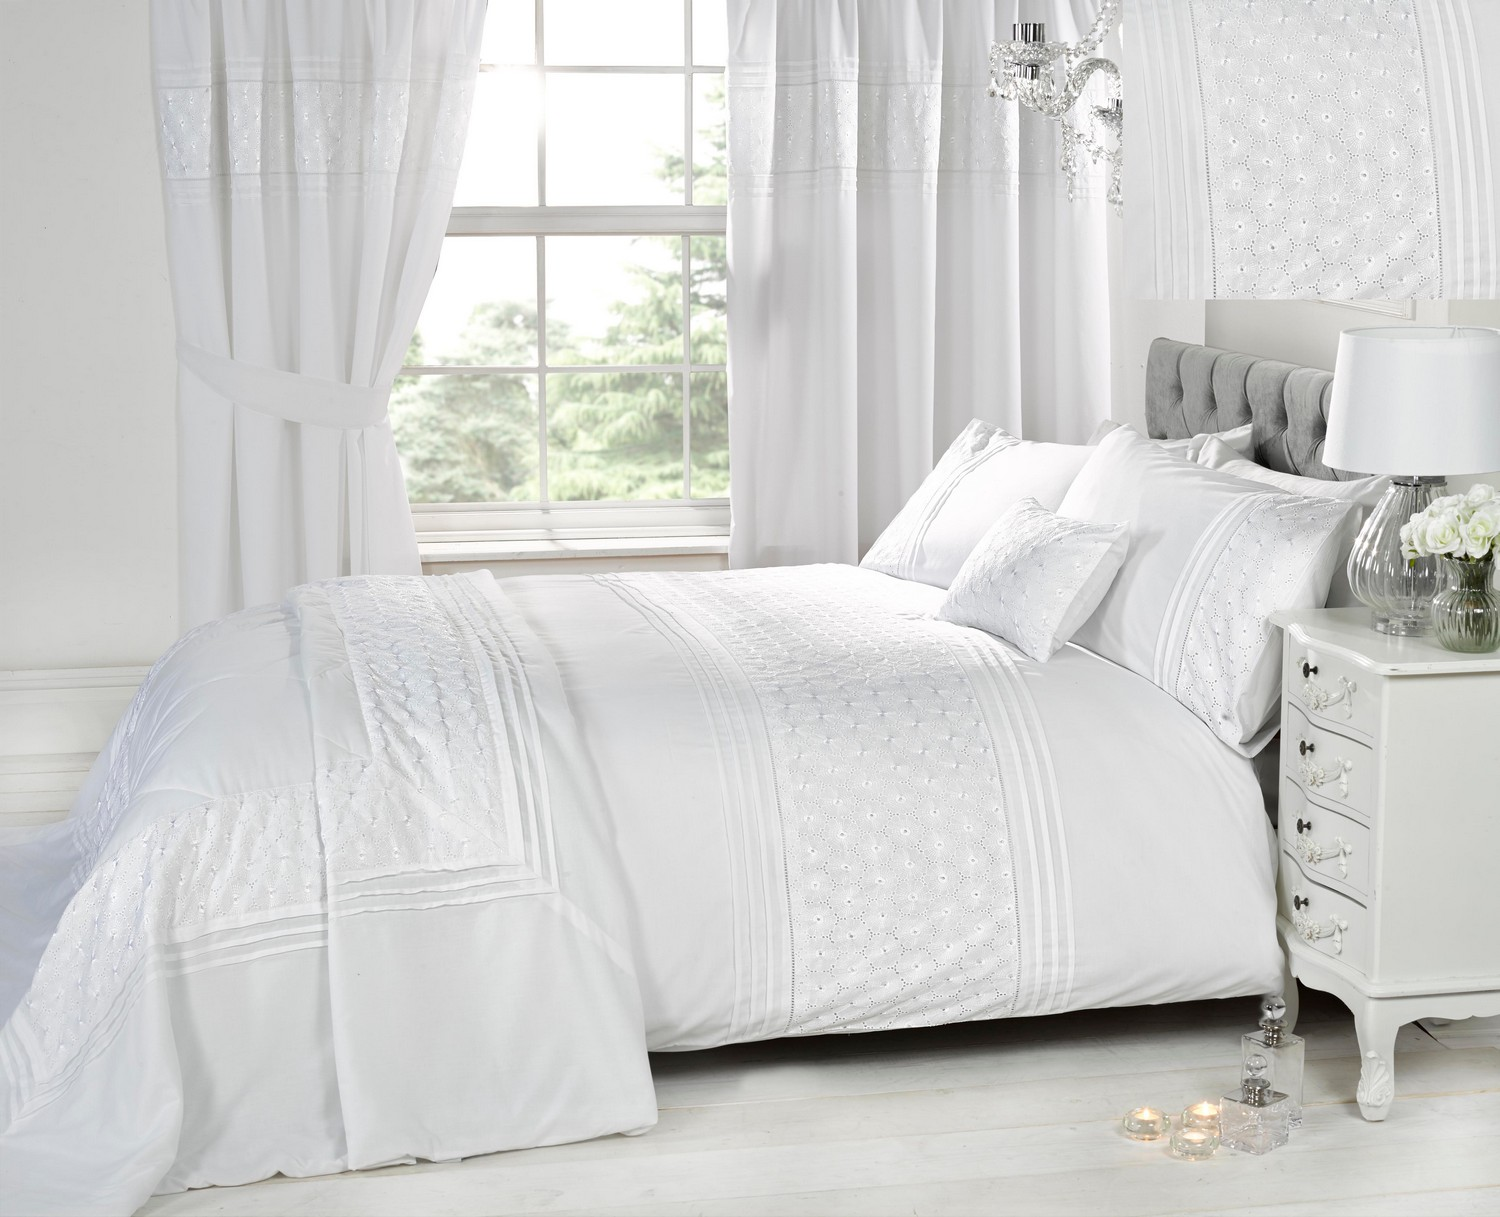 Luxury White Bedding Bed Sets Or Curtains Matching Accessories Embroidered Ebay